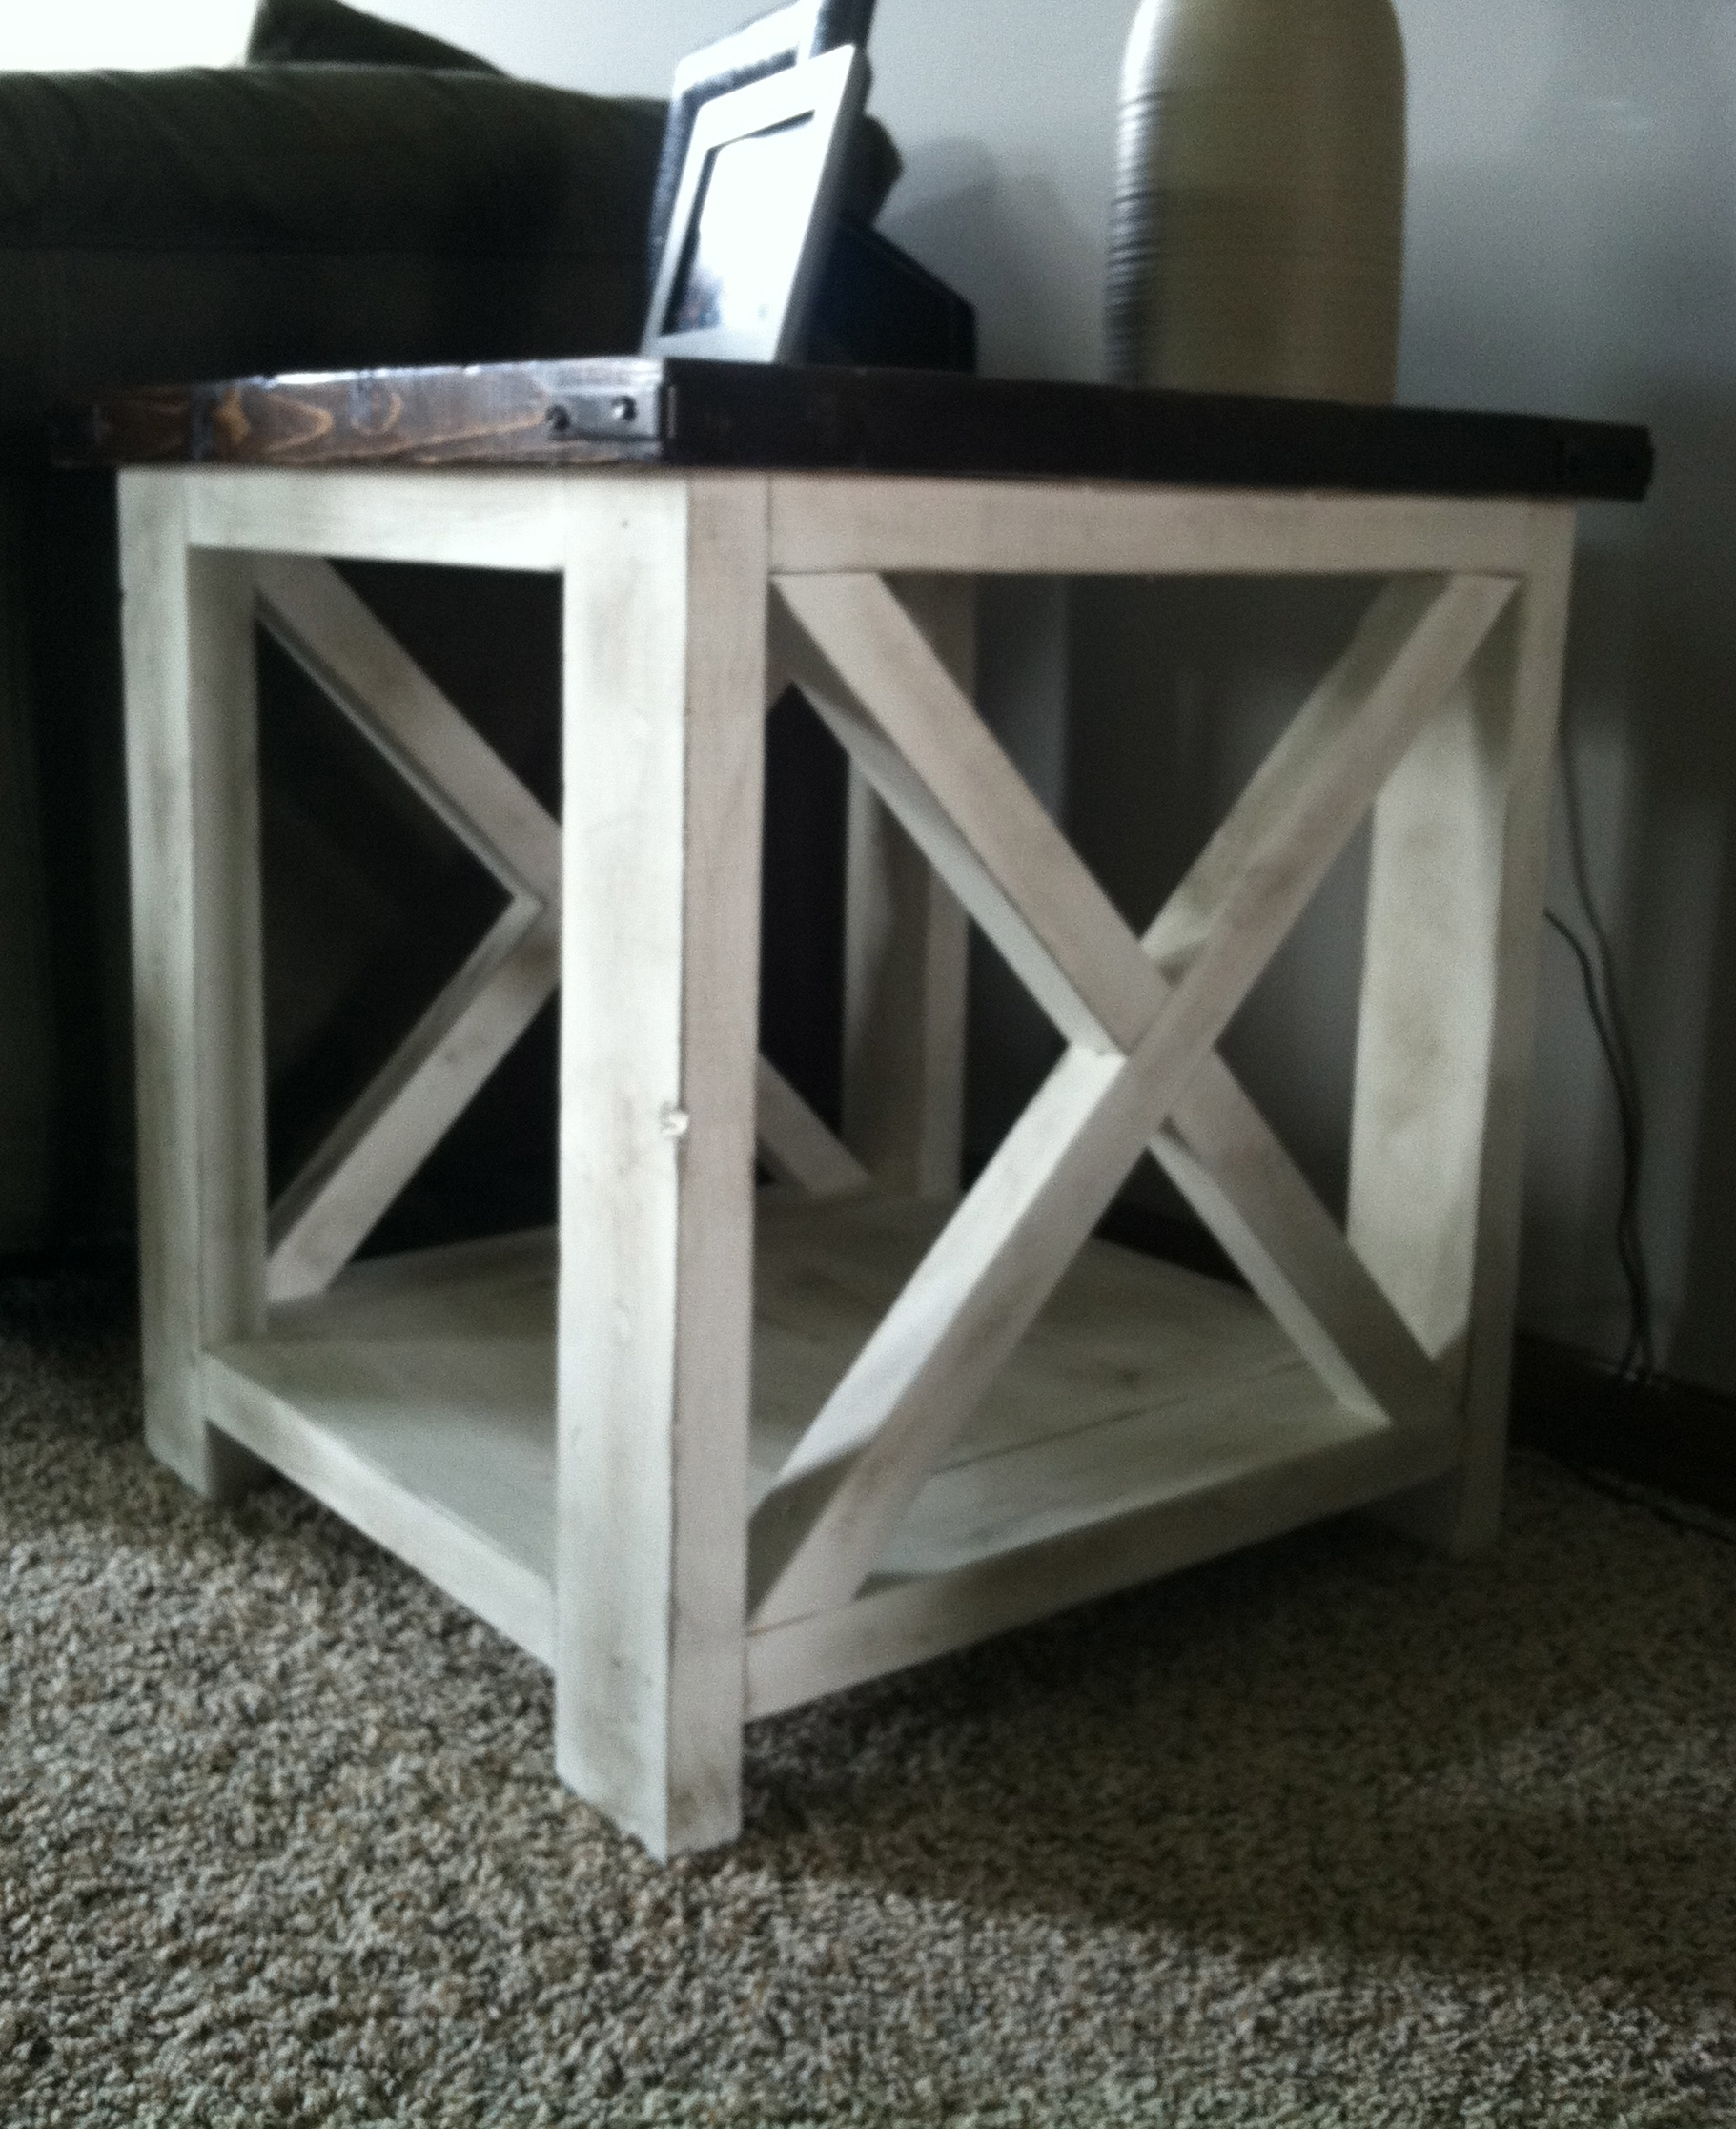 drexel table probably super fun rustic chic end tables idea ana white coffee diy projects funky side industrial farmhouse decor unfinished wood legs ashley hamlyn furniture round